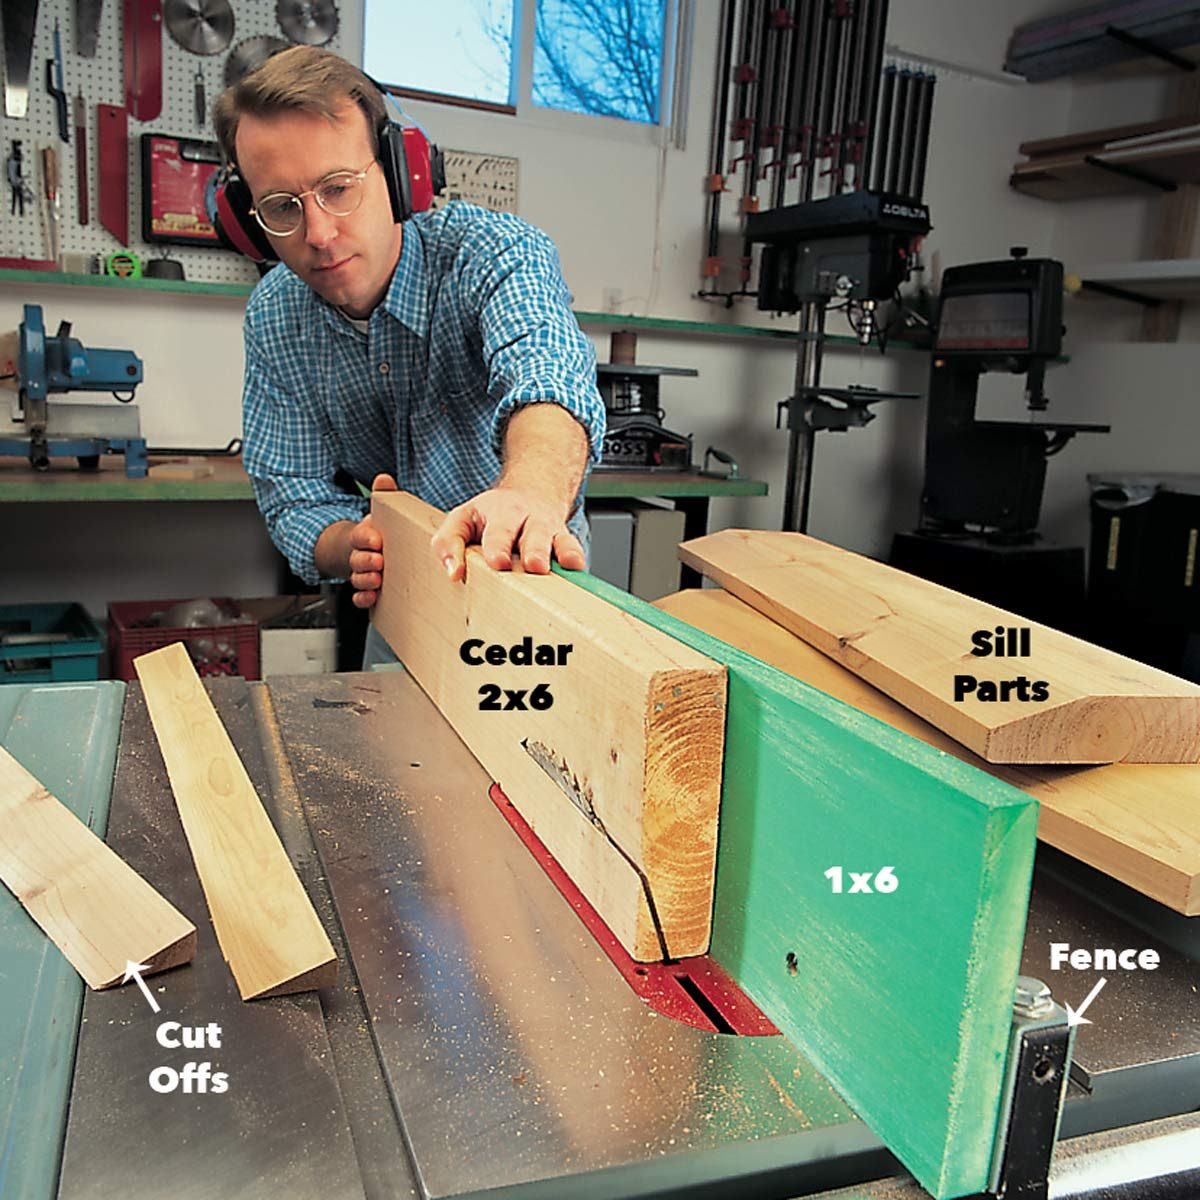 bevel and sill parts